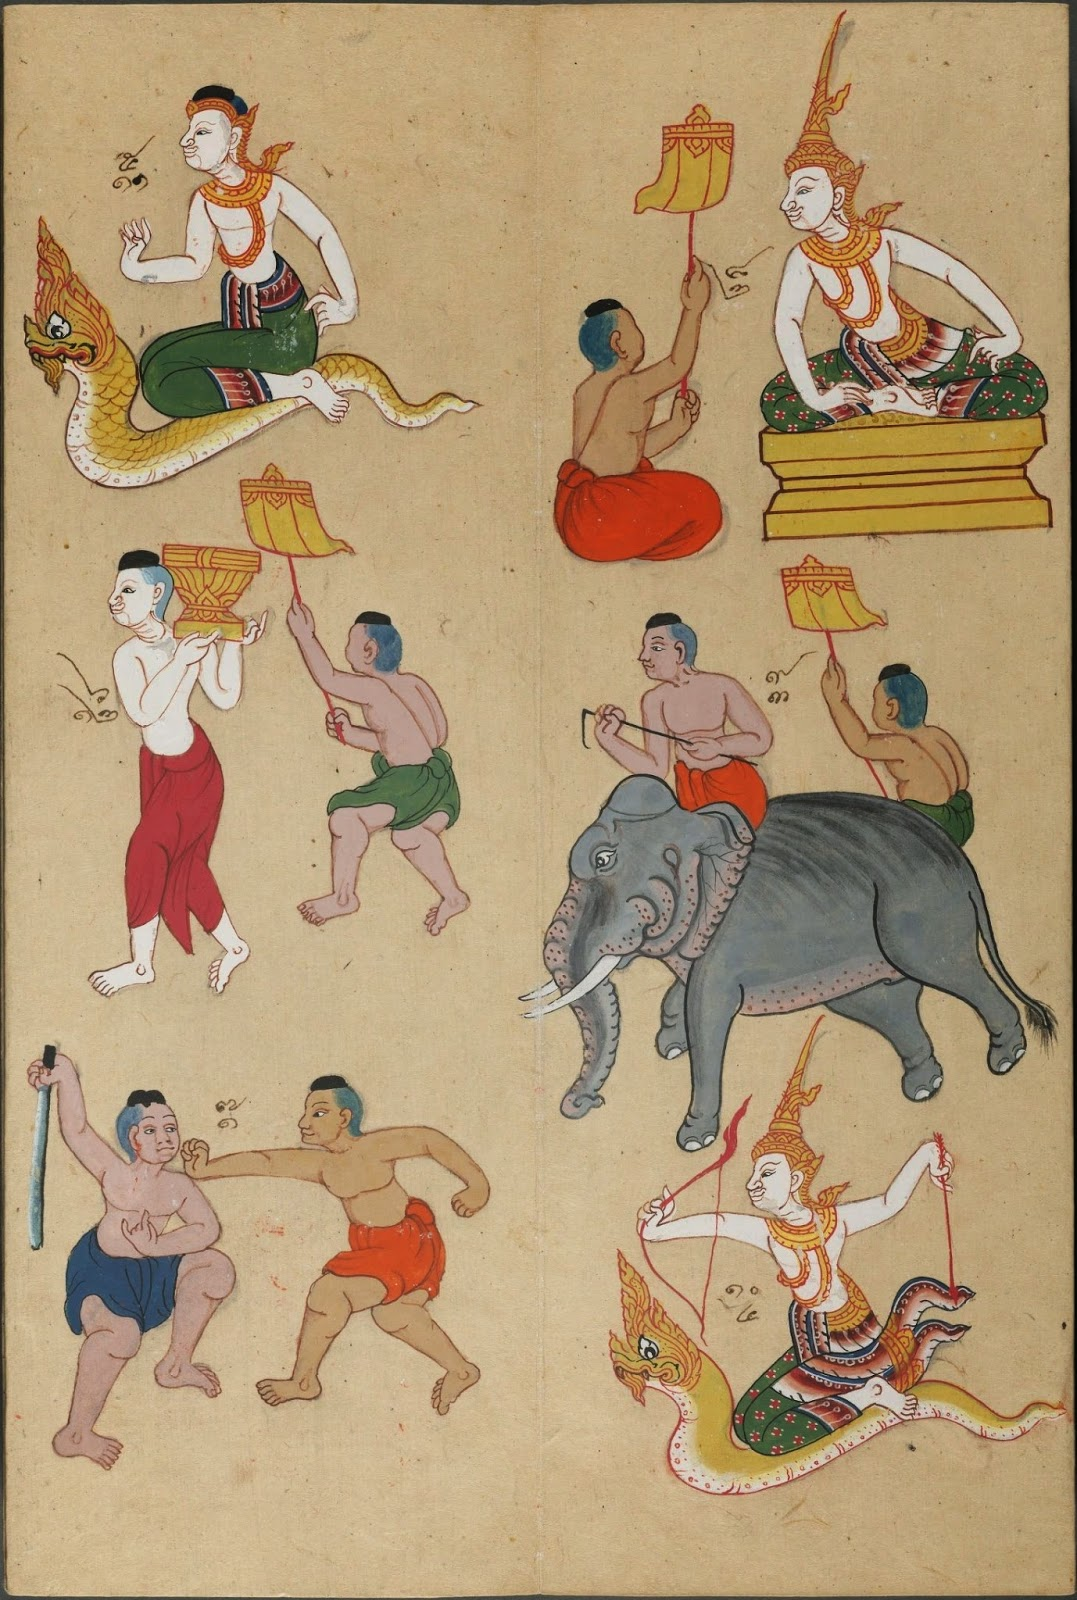 colour drawing of astrological figures from Thai zodiac